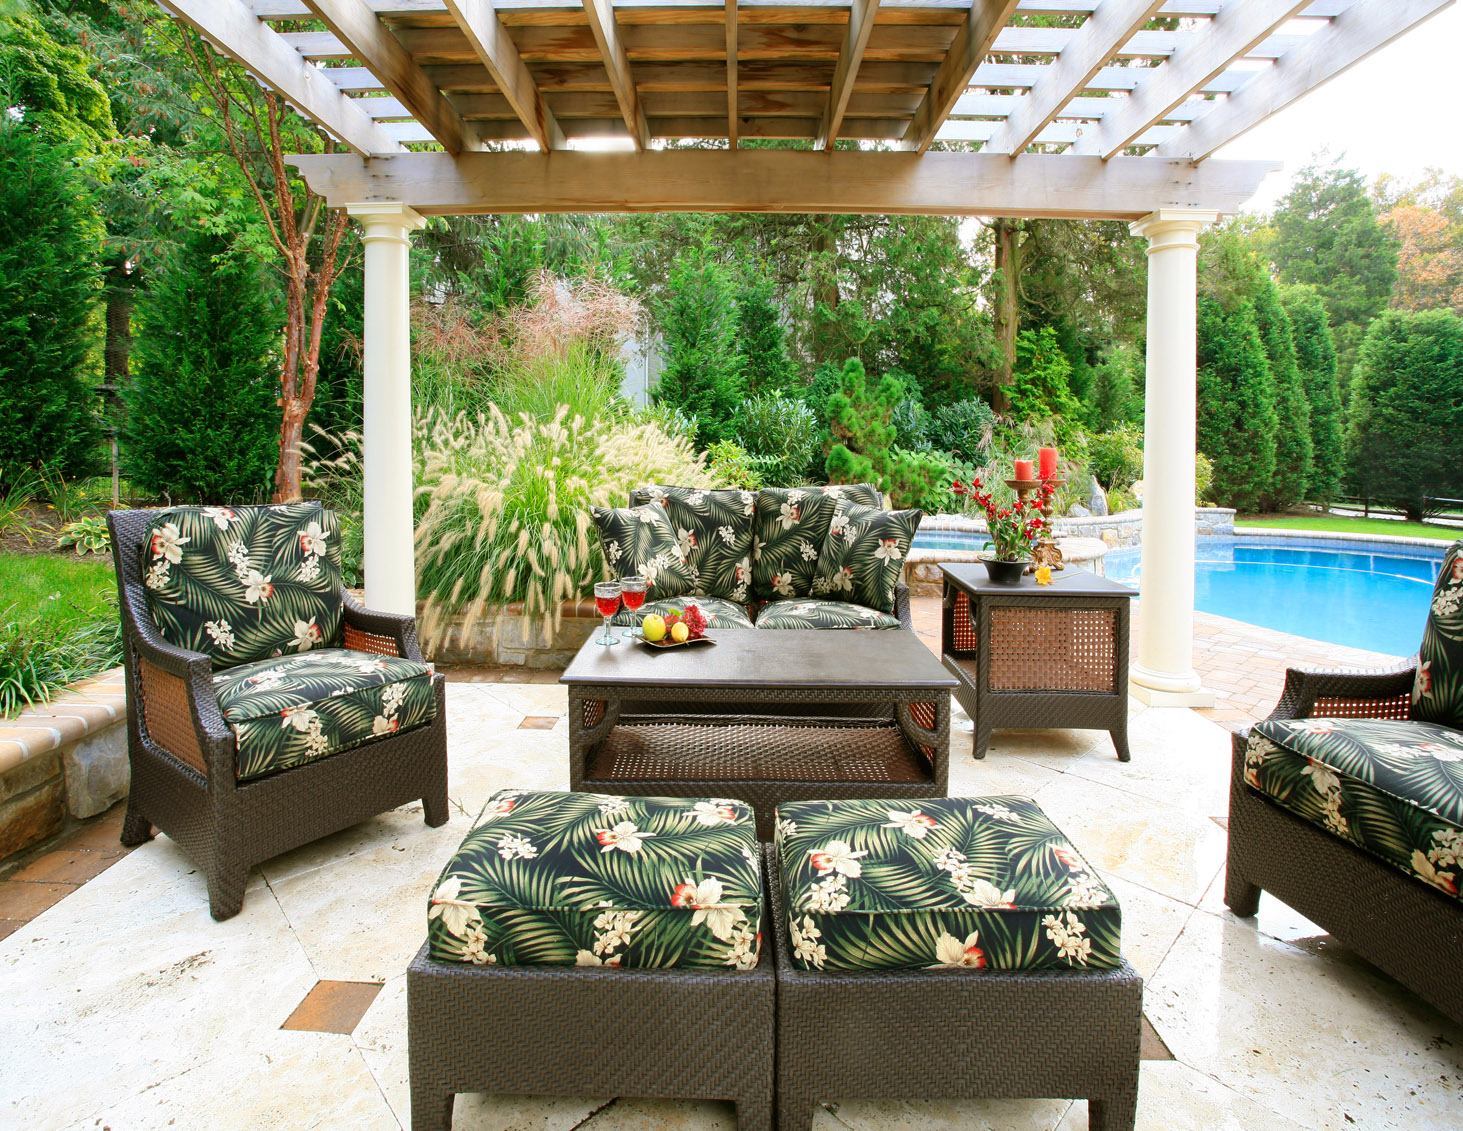 Outdoor Decorating at its finest | Catherine Pulcine The CPI Team